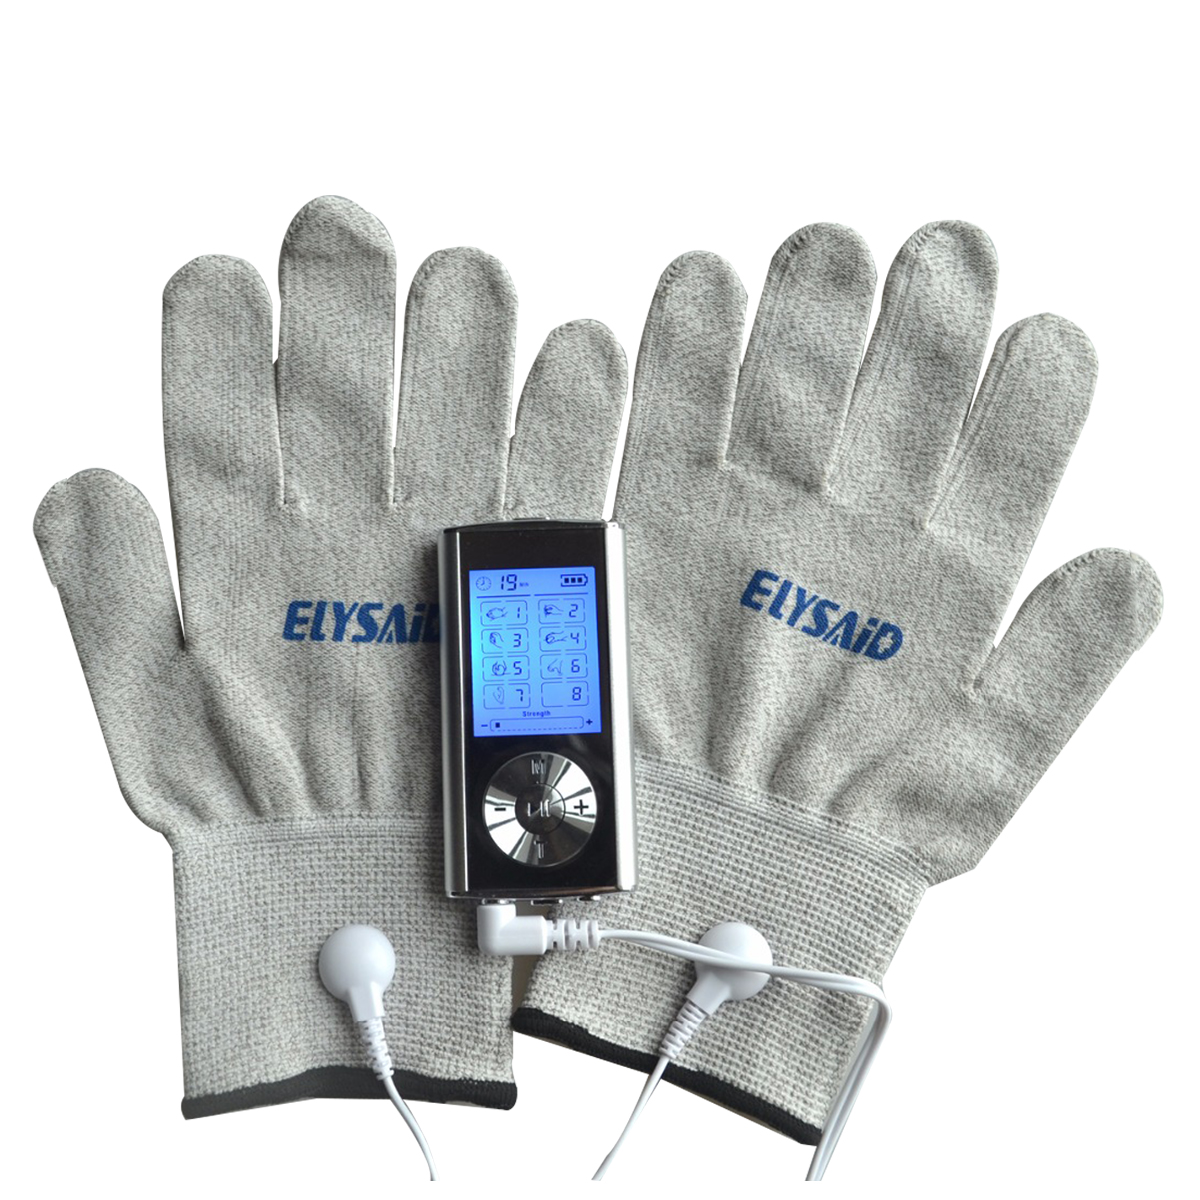 2 Channels Electrode TENS Massager Digital Therapy Machine Muscle Stimulator With 1Pair Conductive Silver Fiber Gloves